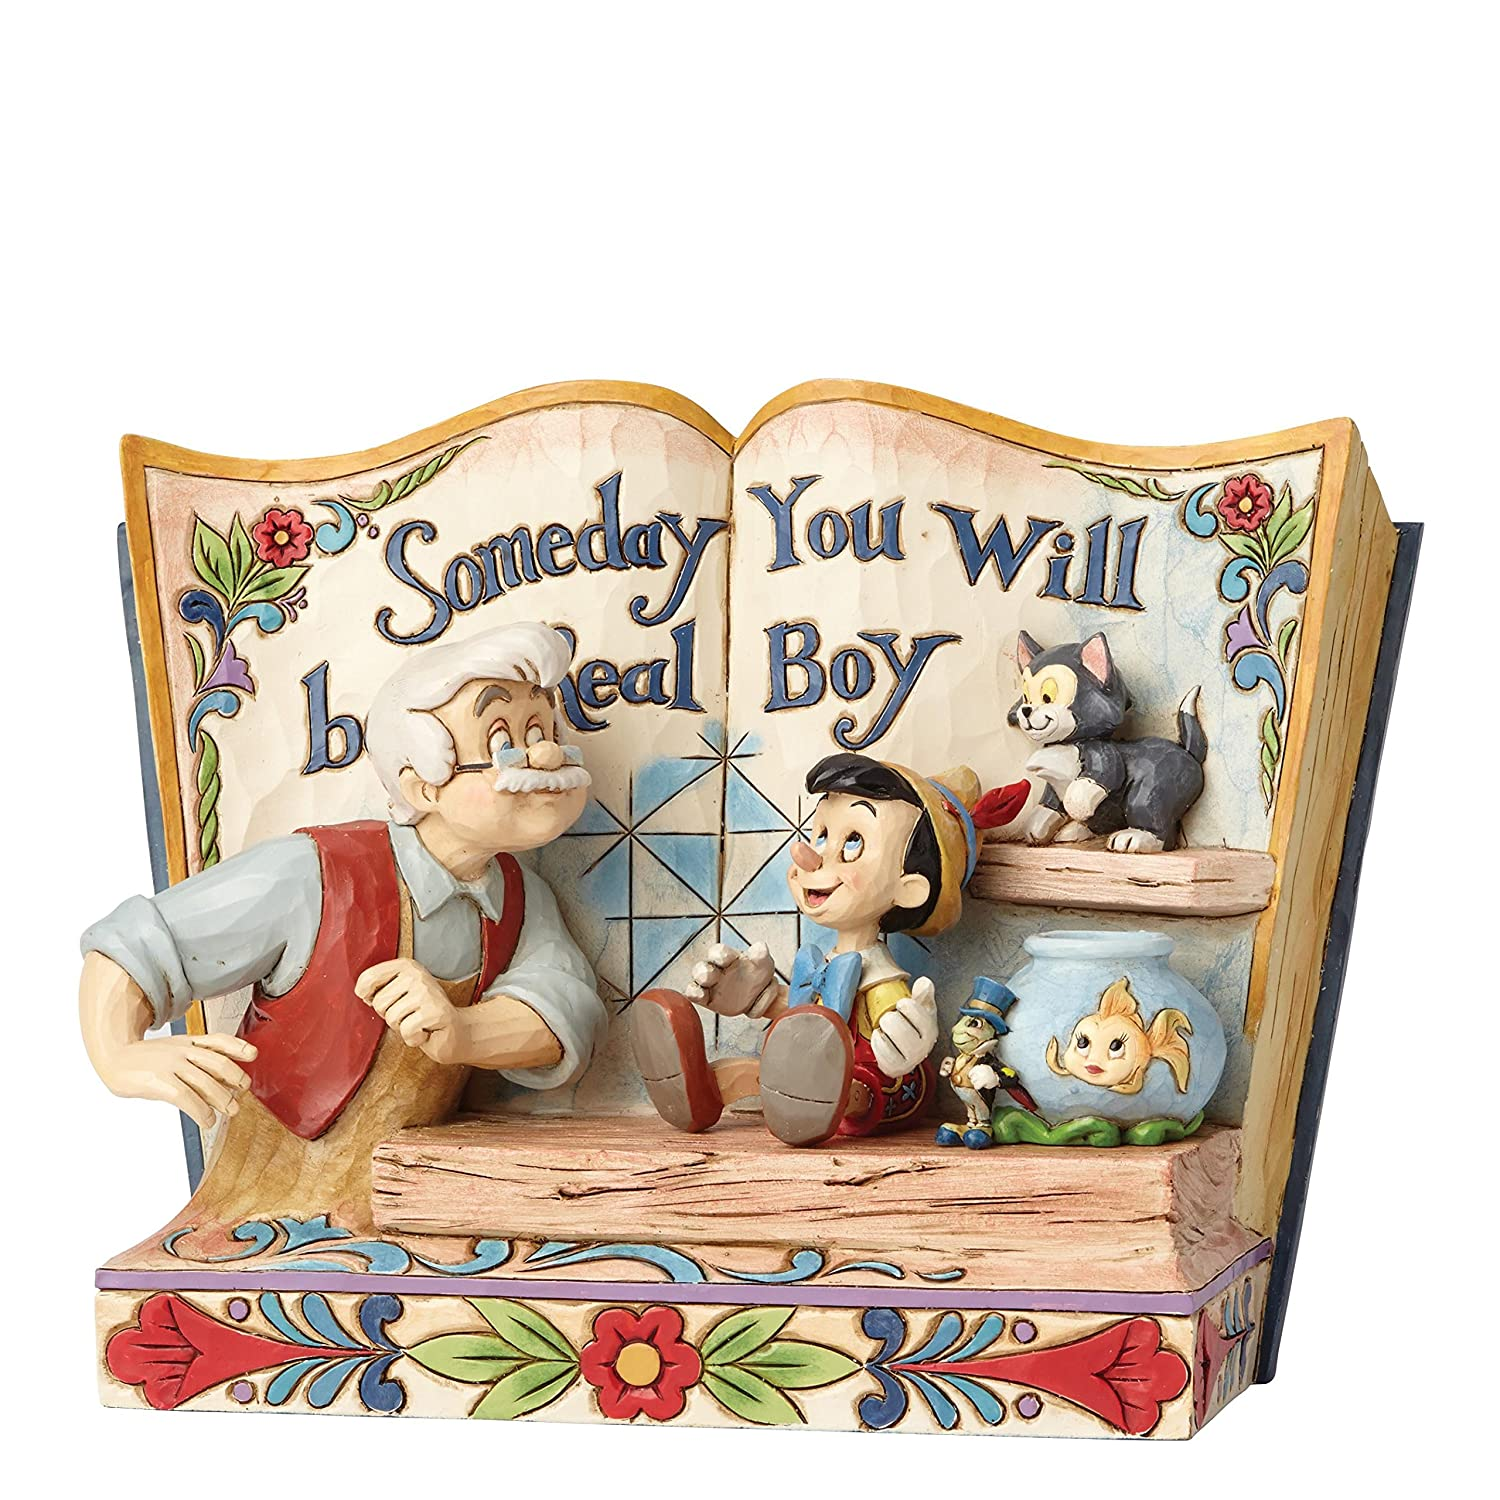 Disney Traditions 4057957 Statue Someday You Will Be A Real Boy-Storybook Pinocchio Figurine, Multi-Colour, 22 x 10 x 15 cm Enesco SS-EE-EN4057957